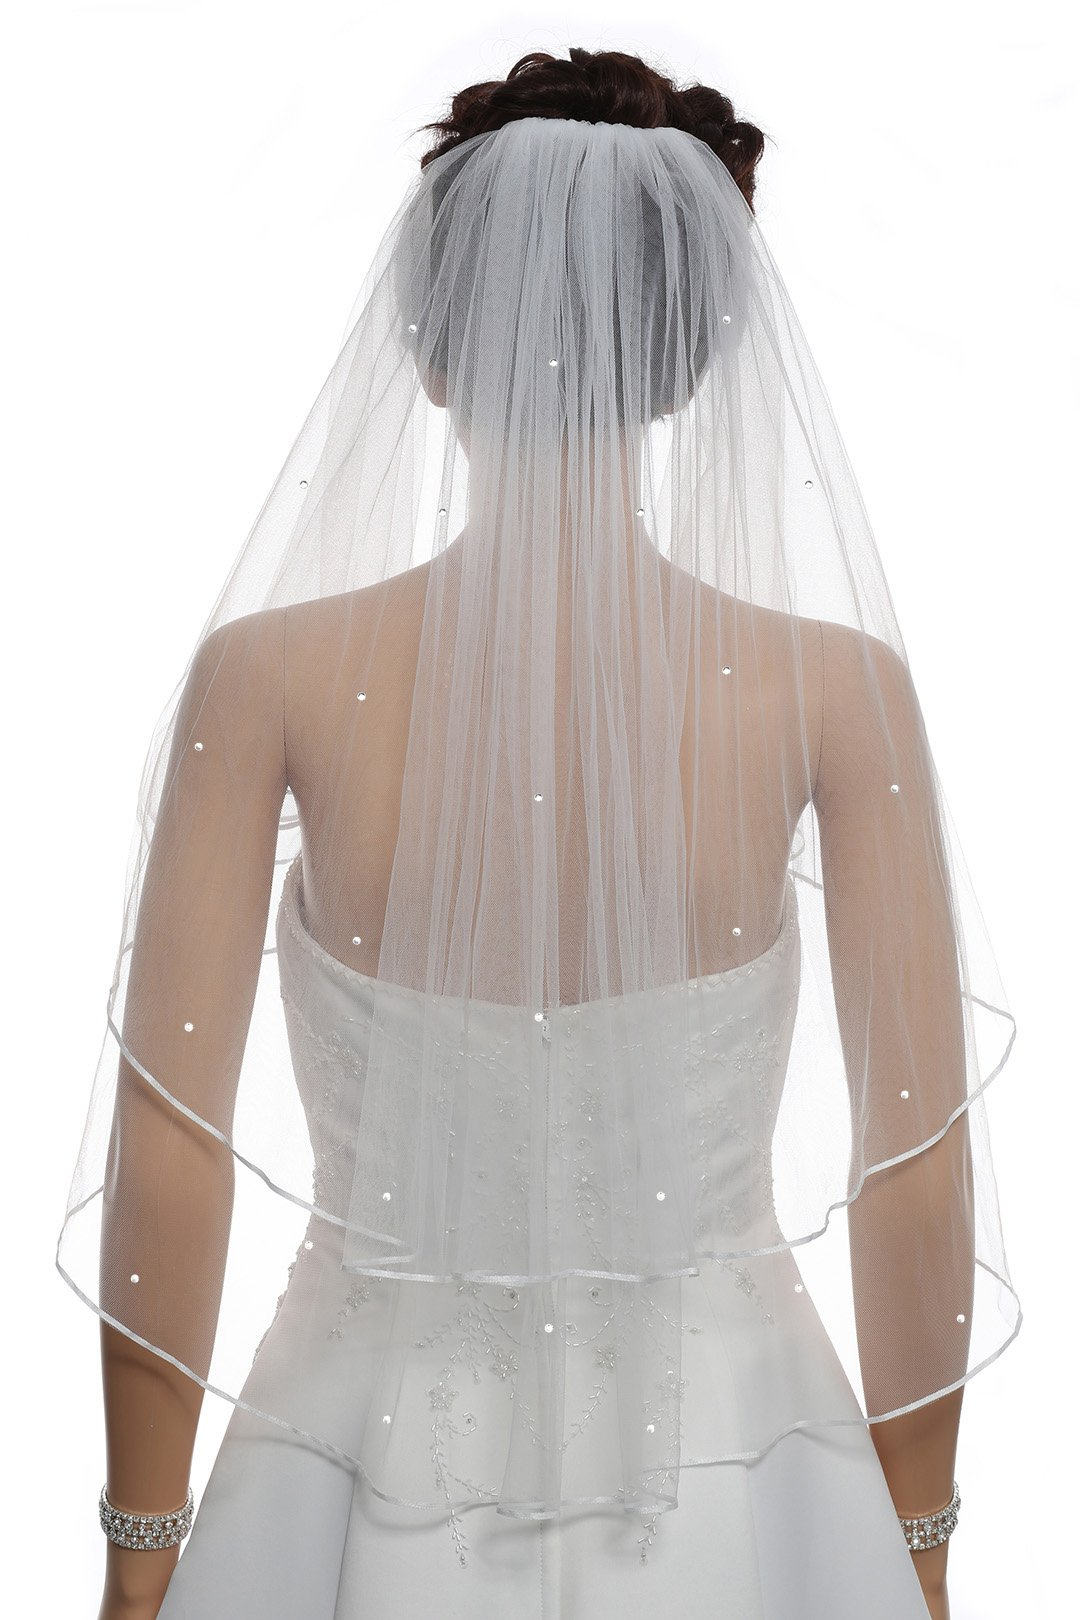 2T 2 Tier 1/8'' Ribbon Crystal Circular Veil - White Elbow Length 30'' V541